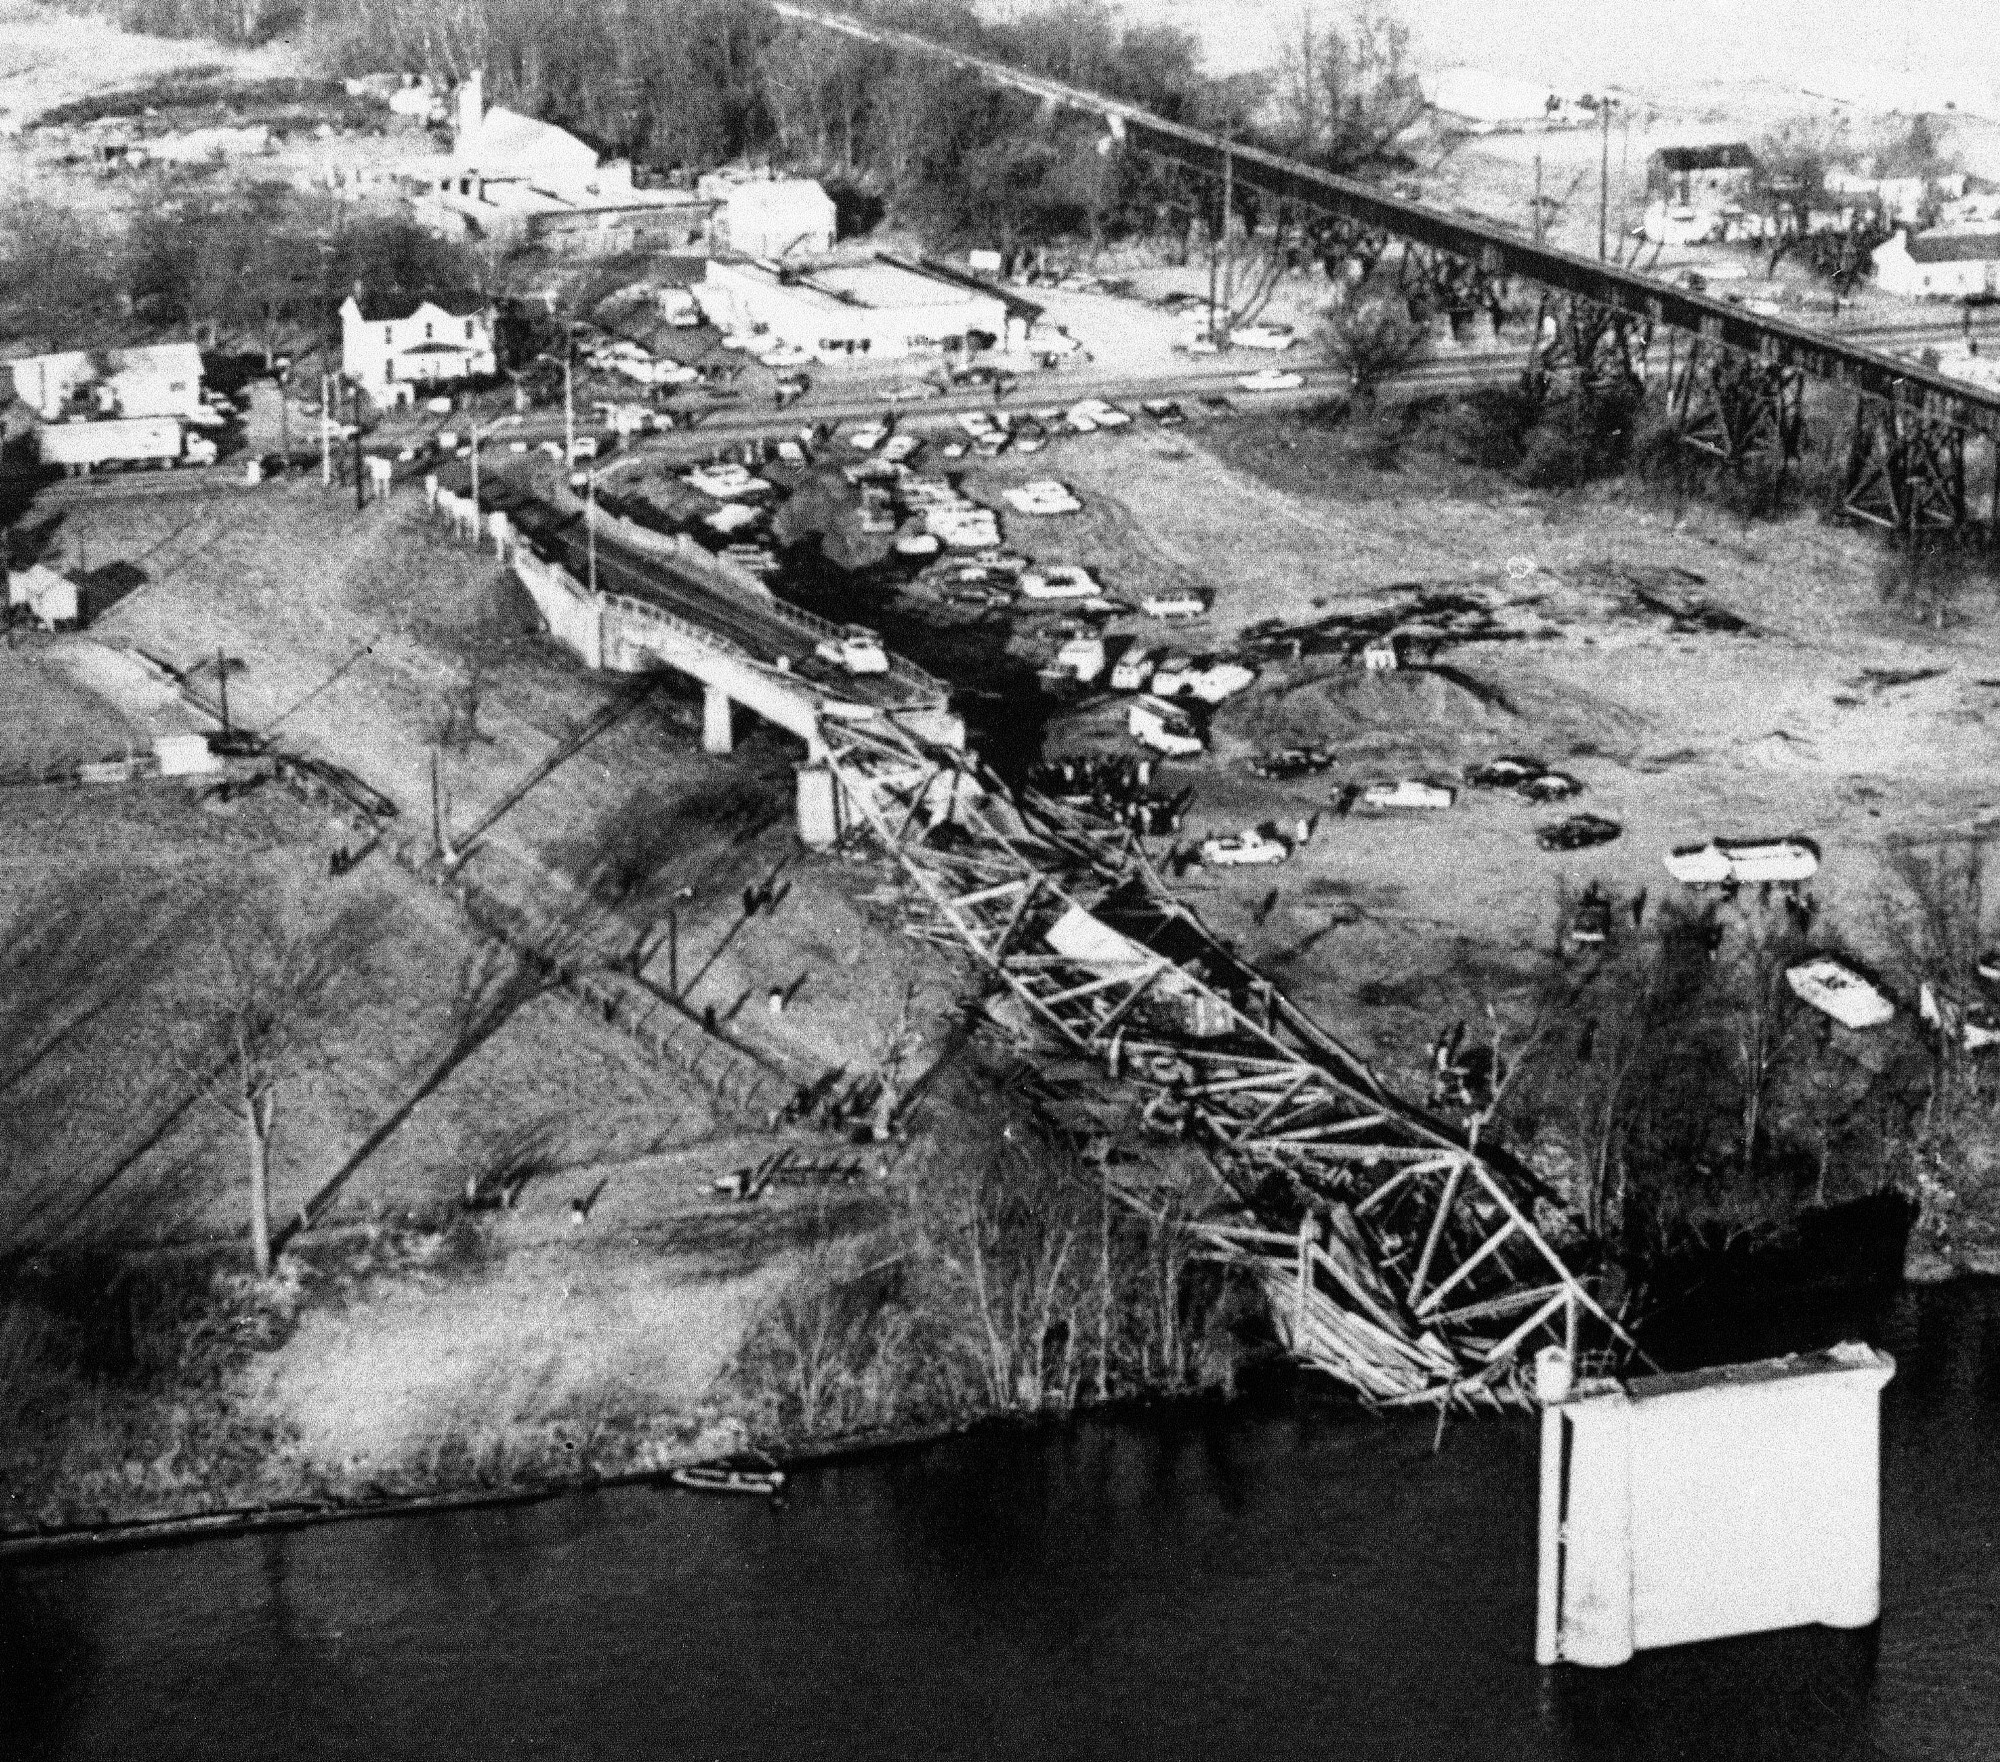 The deadliest bridge disaster in US history was caused by a tiny ...